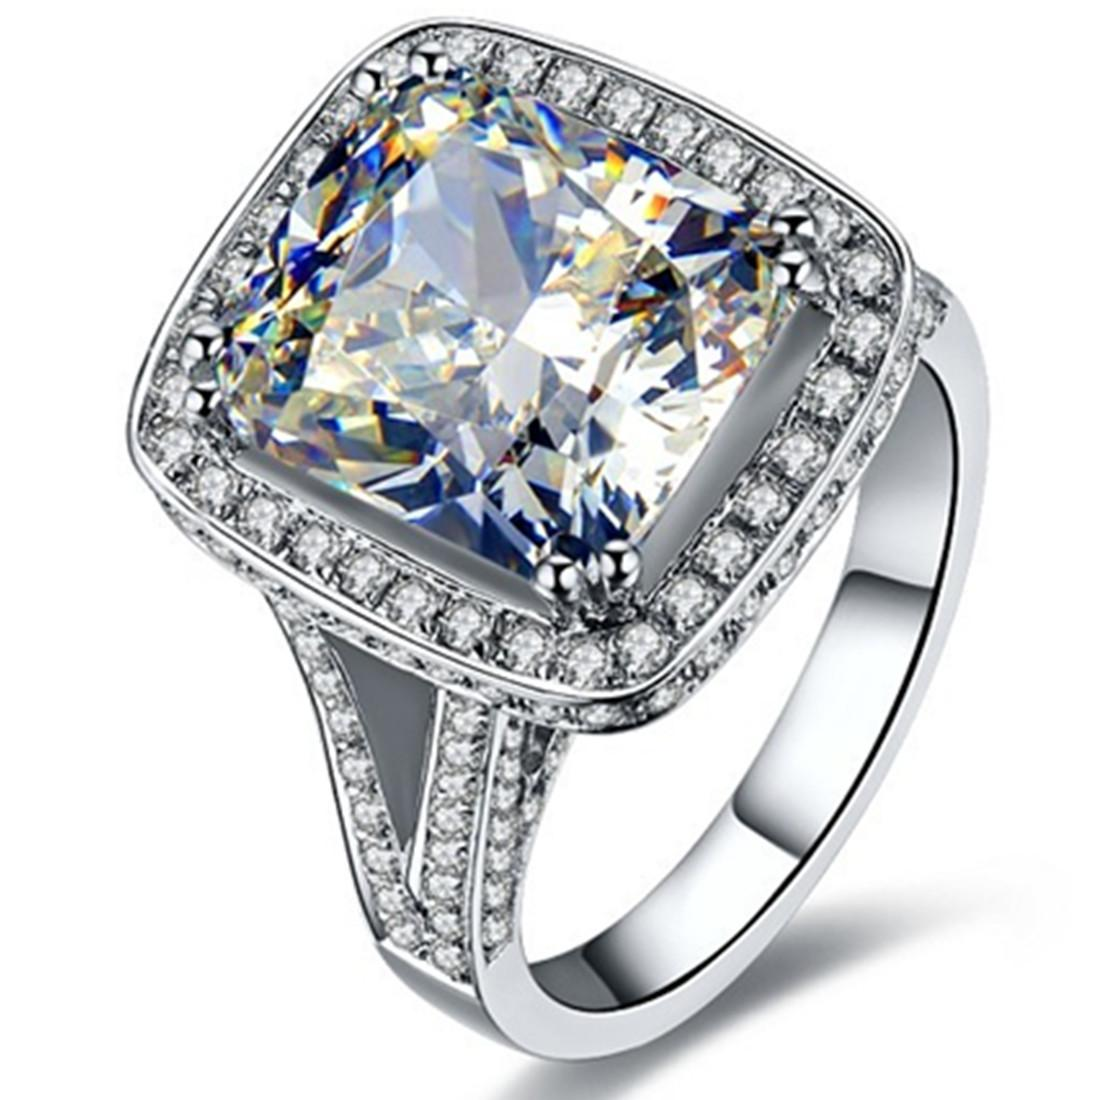 Stunning 8Ct Cushion Cut Synthetic Diamond Engagement Ring for Women Solid 925 Sterling Silver Ring Brilliant Forever Jewelry